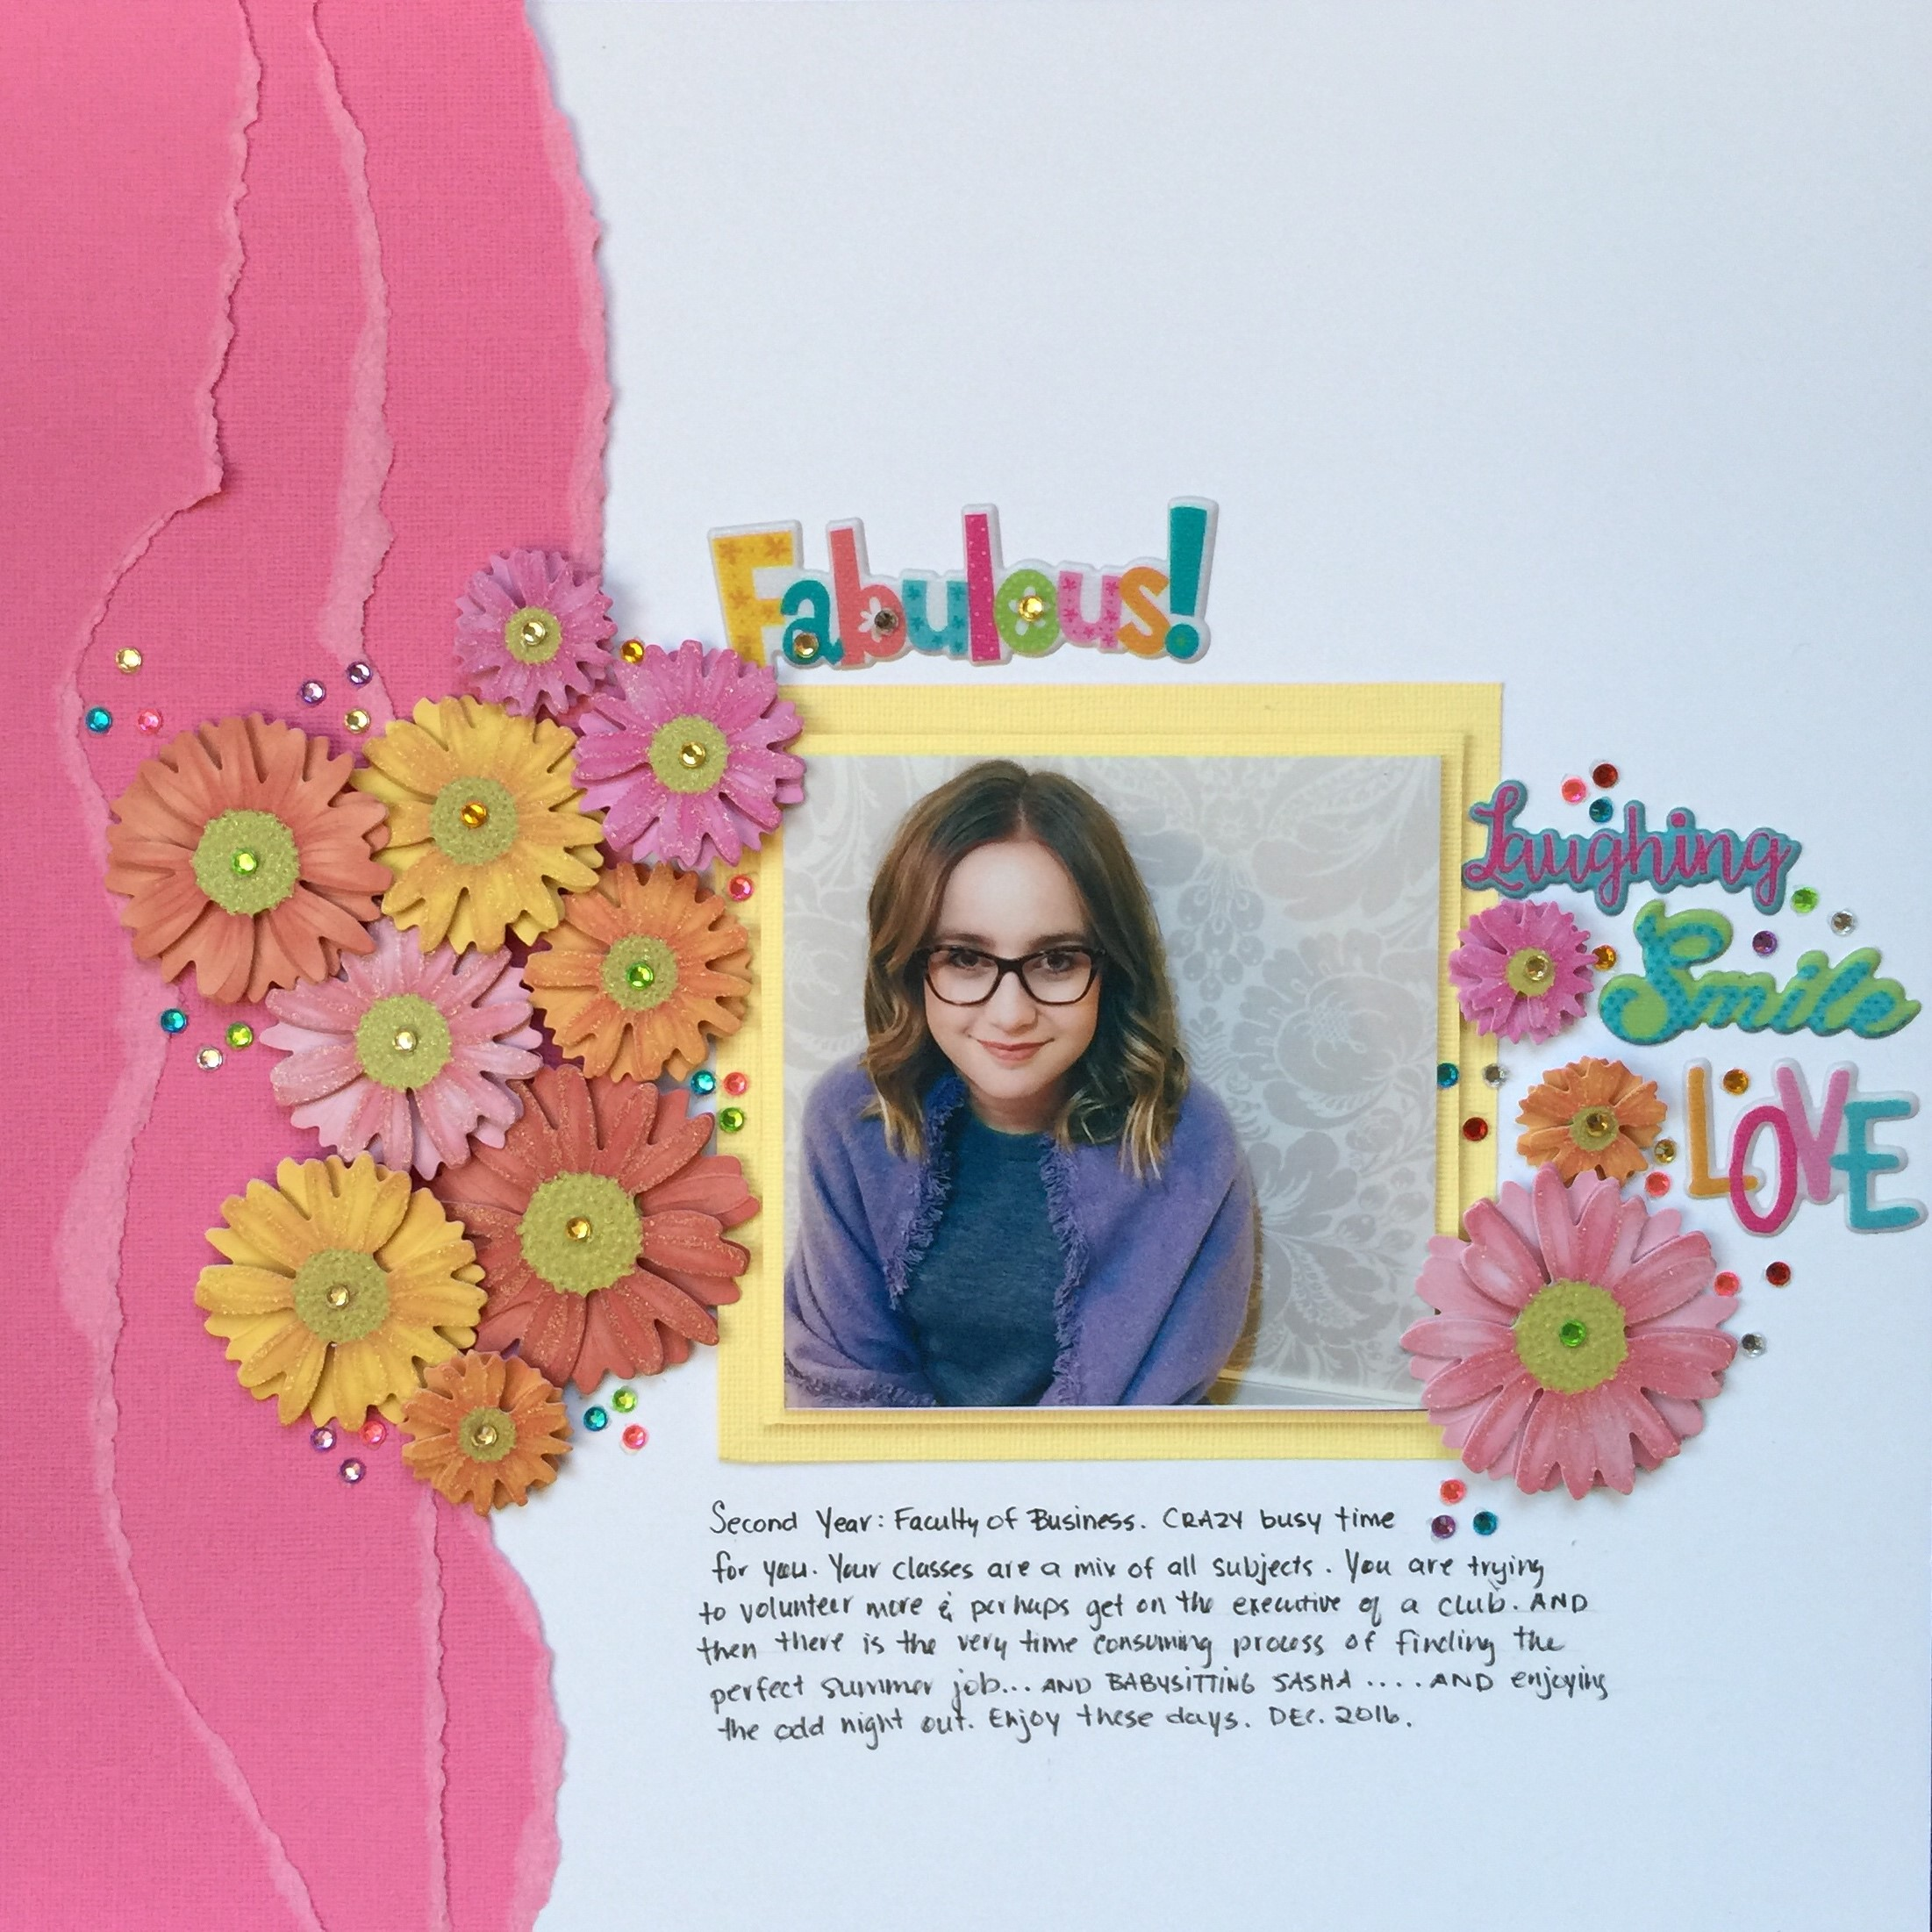 Scrapbooking projects designed by Kerry Engel featuring MultiCraft product of a young girl sitting in front of a white floral wall paper